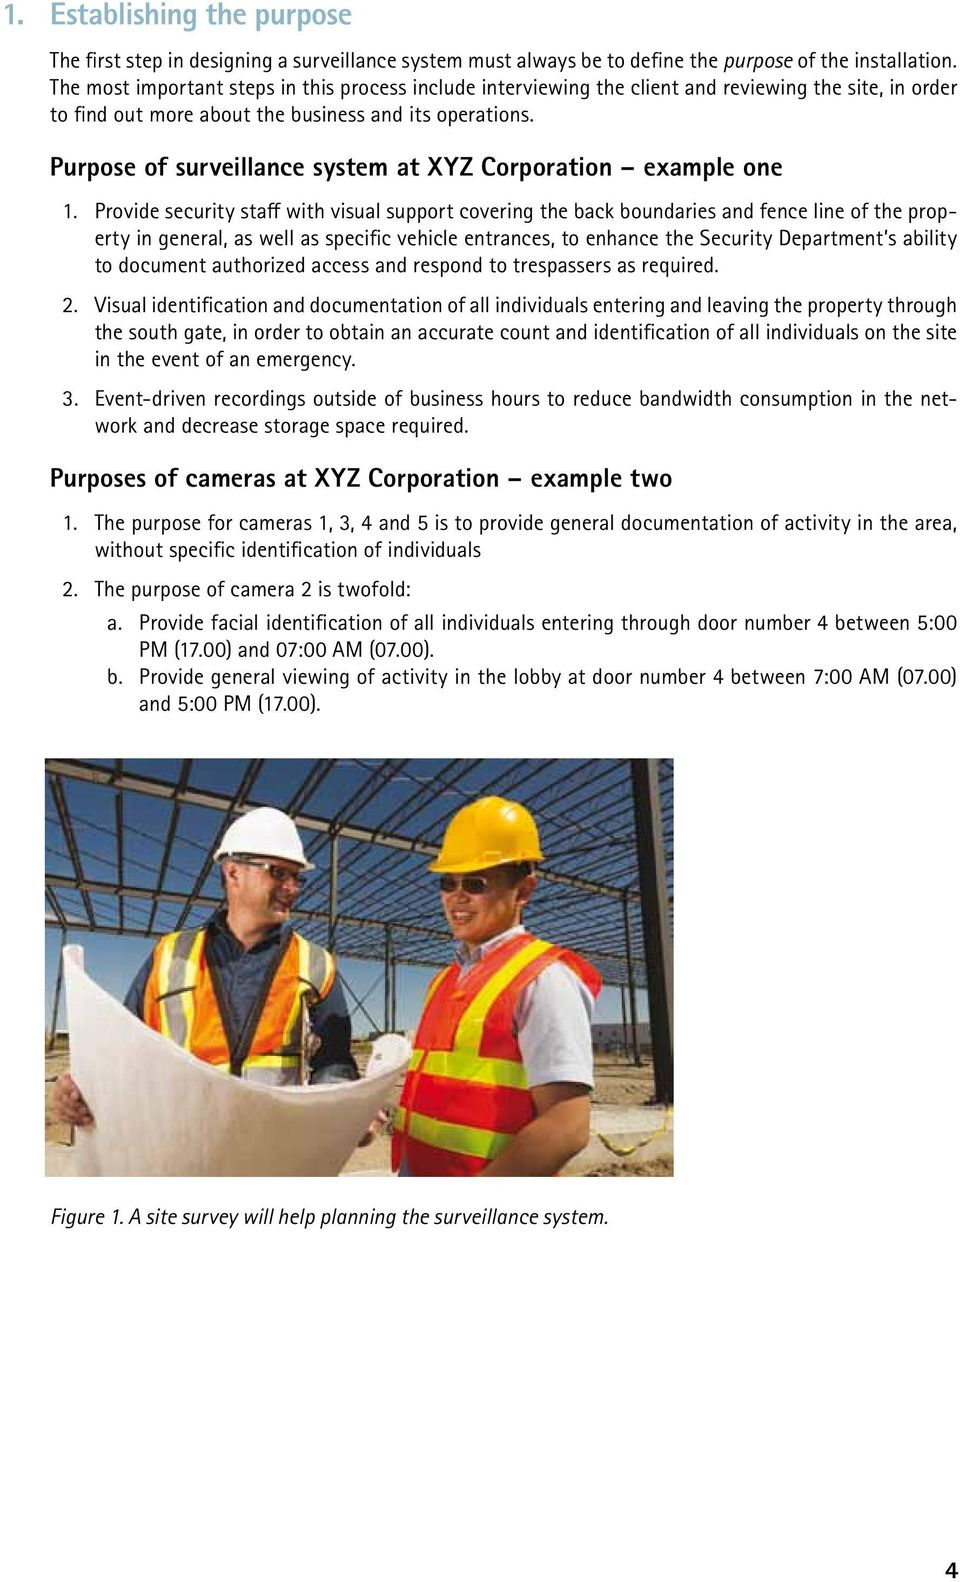 Purpose of surveillance system at XYZ Corporation example one 1.